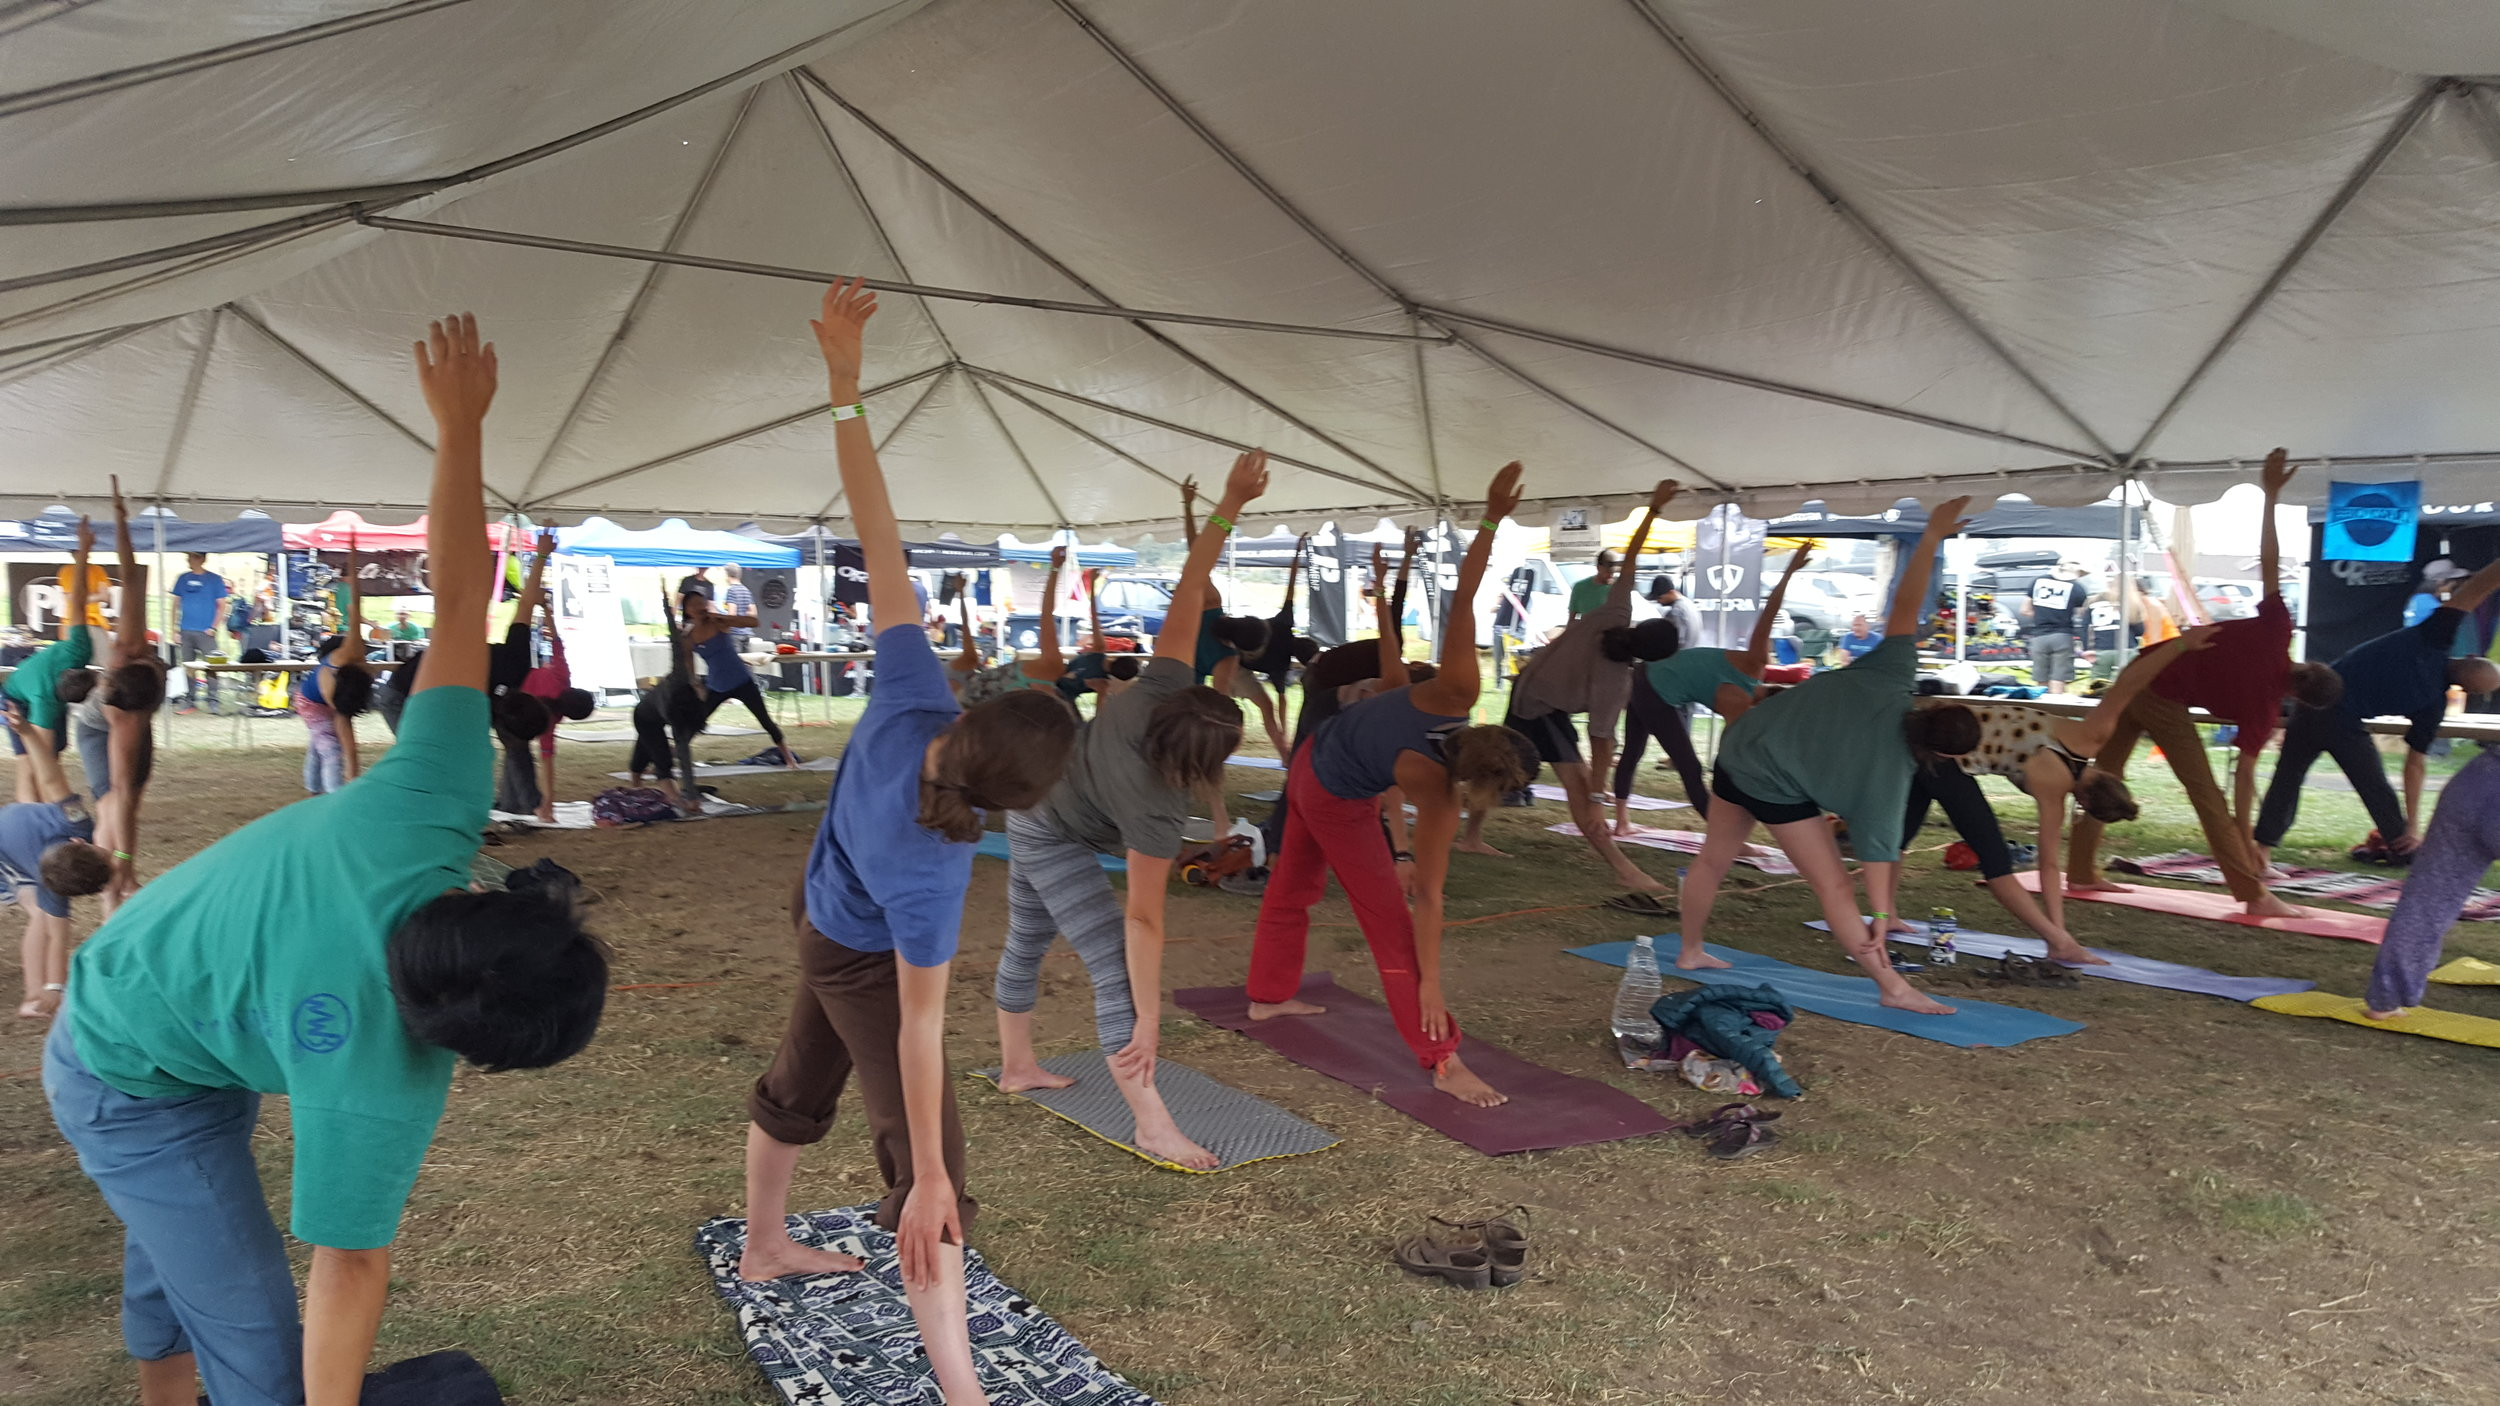 Yoga was offered again this year at the Craggin'